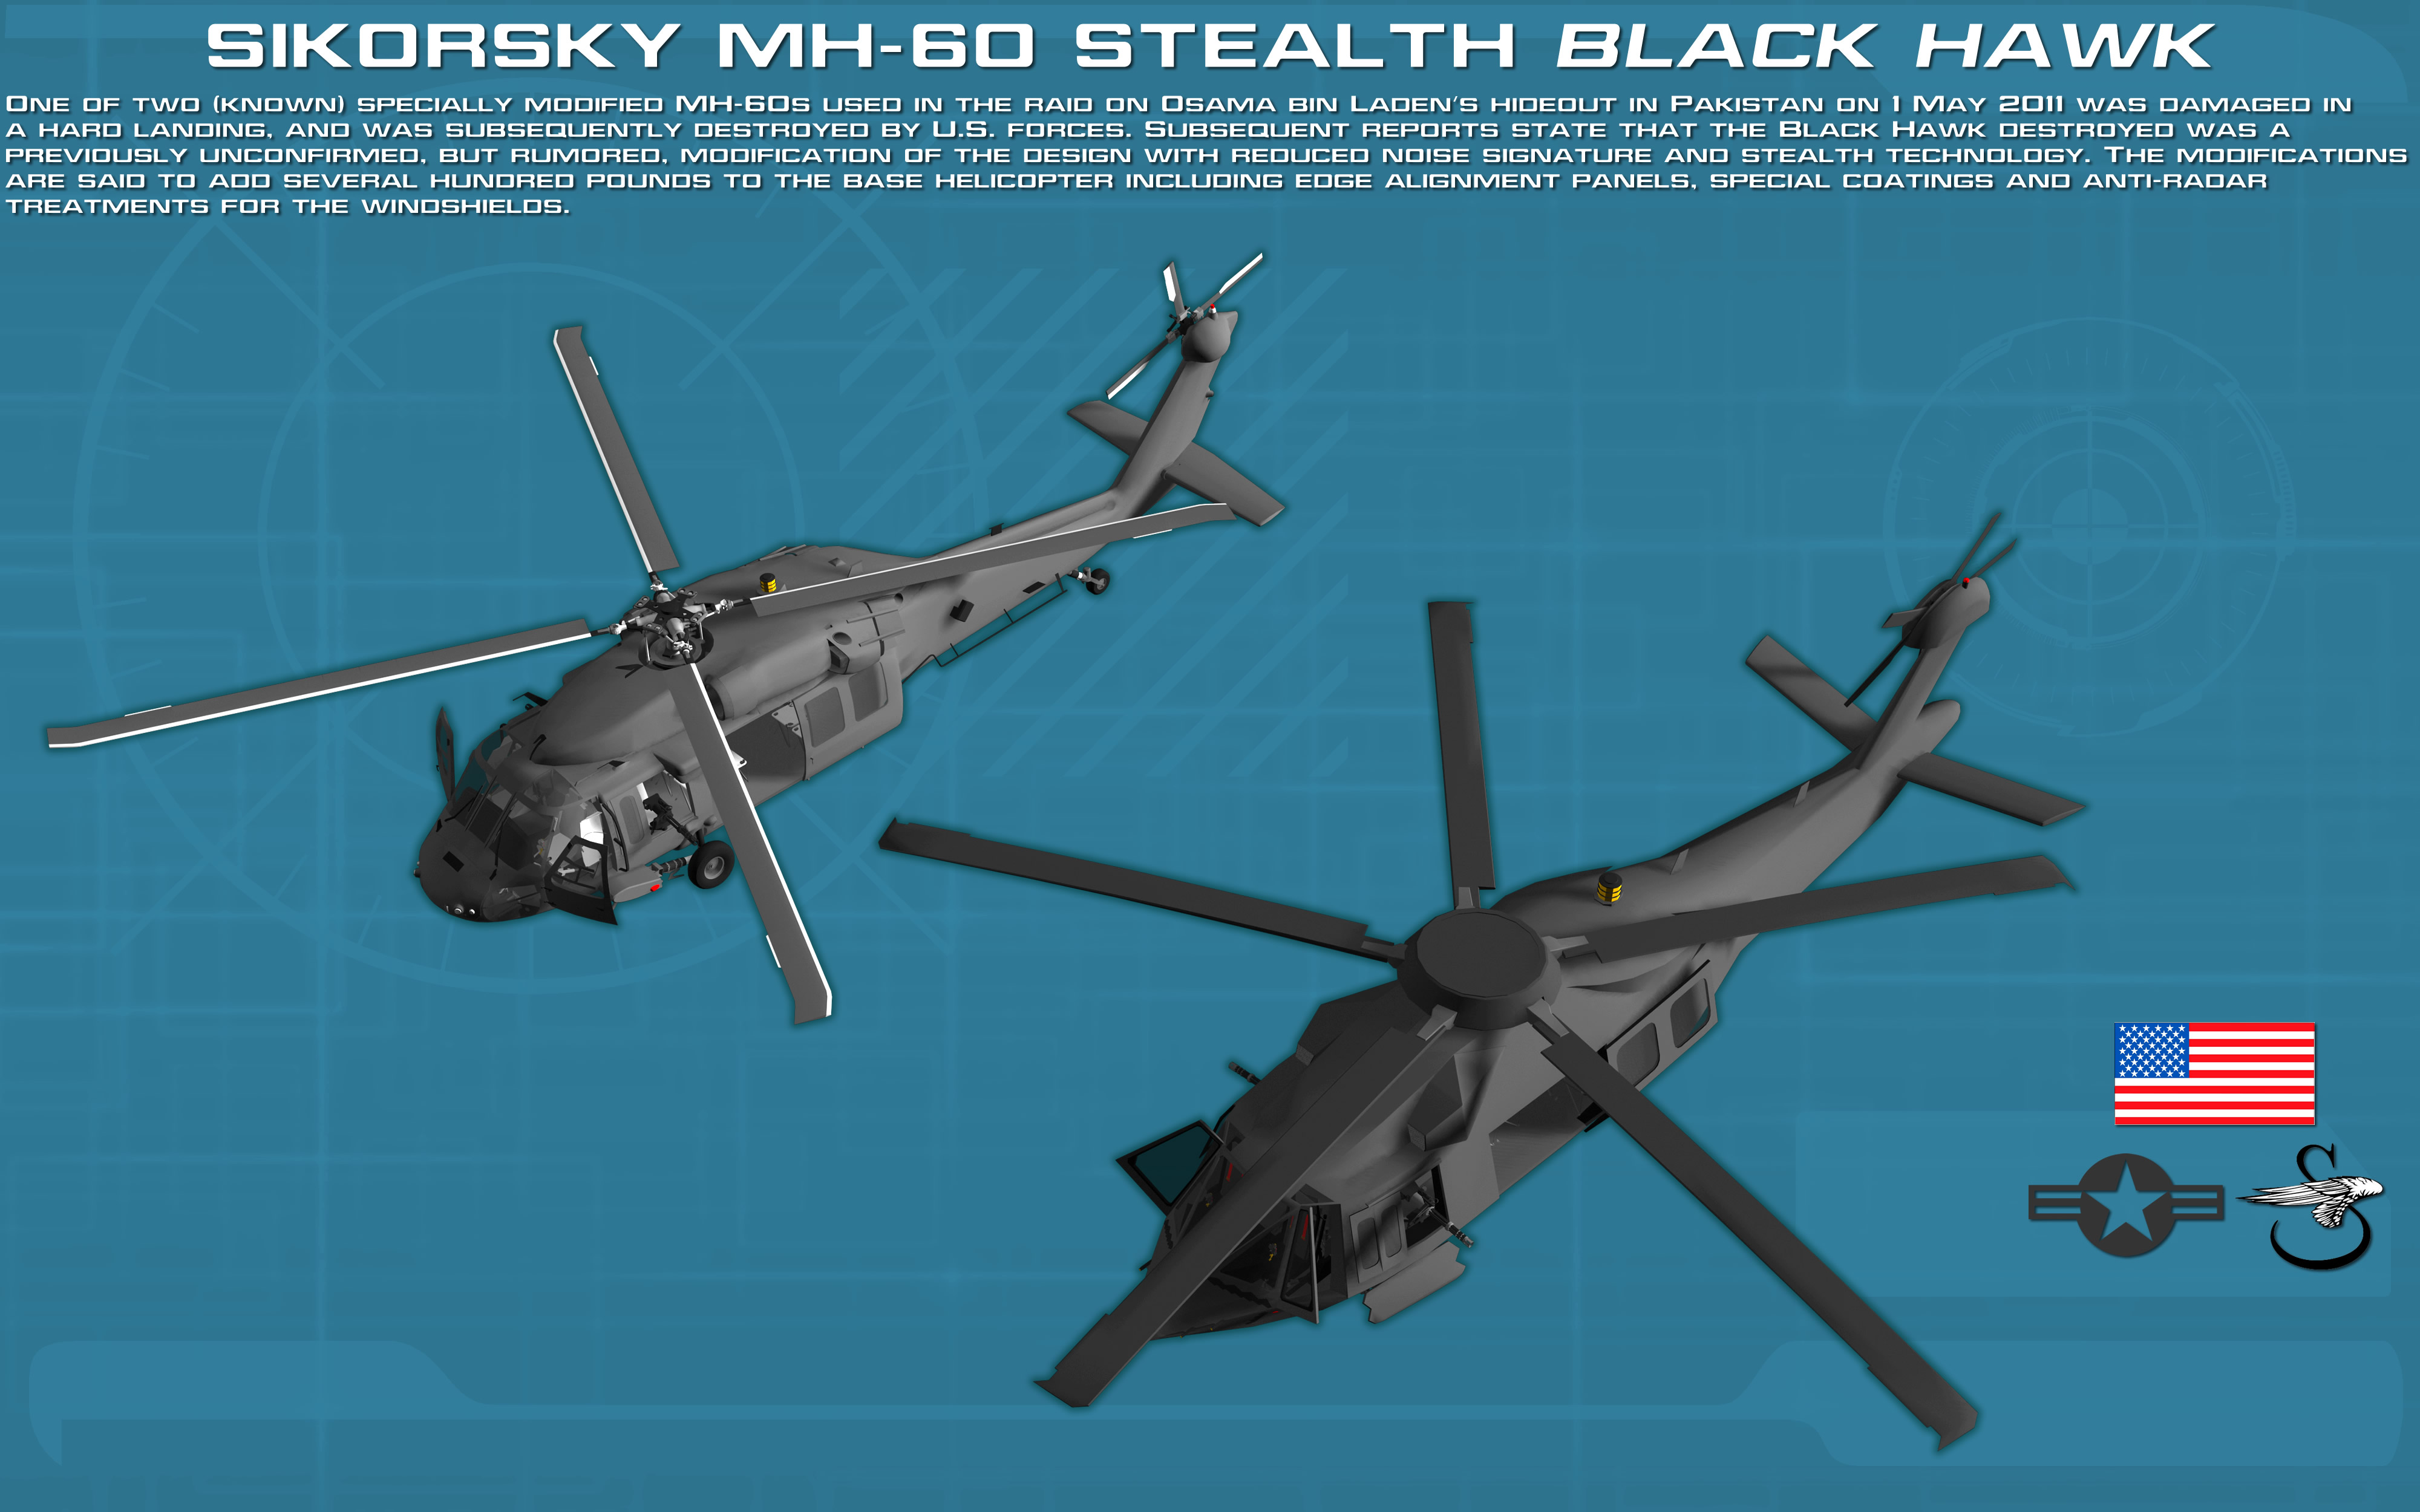 zero helicopter with Stealth Sikorsky Black Hawk  Parison New 470844835 on Watch also Watch as well 44054 together with Watch moreover 48.